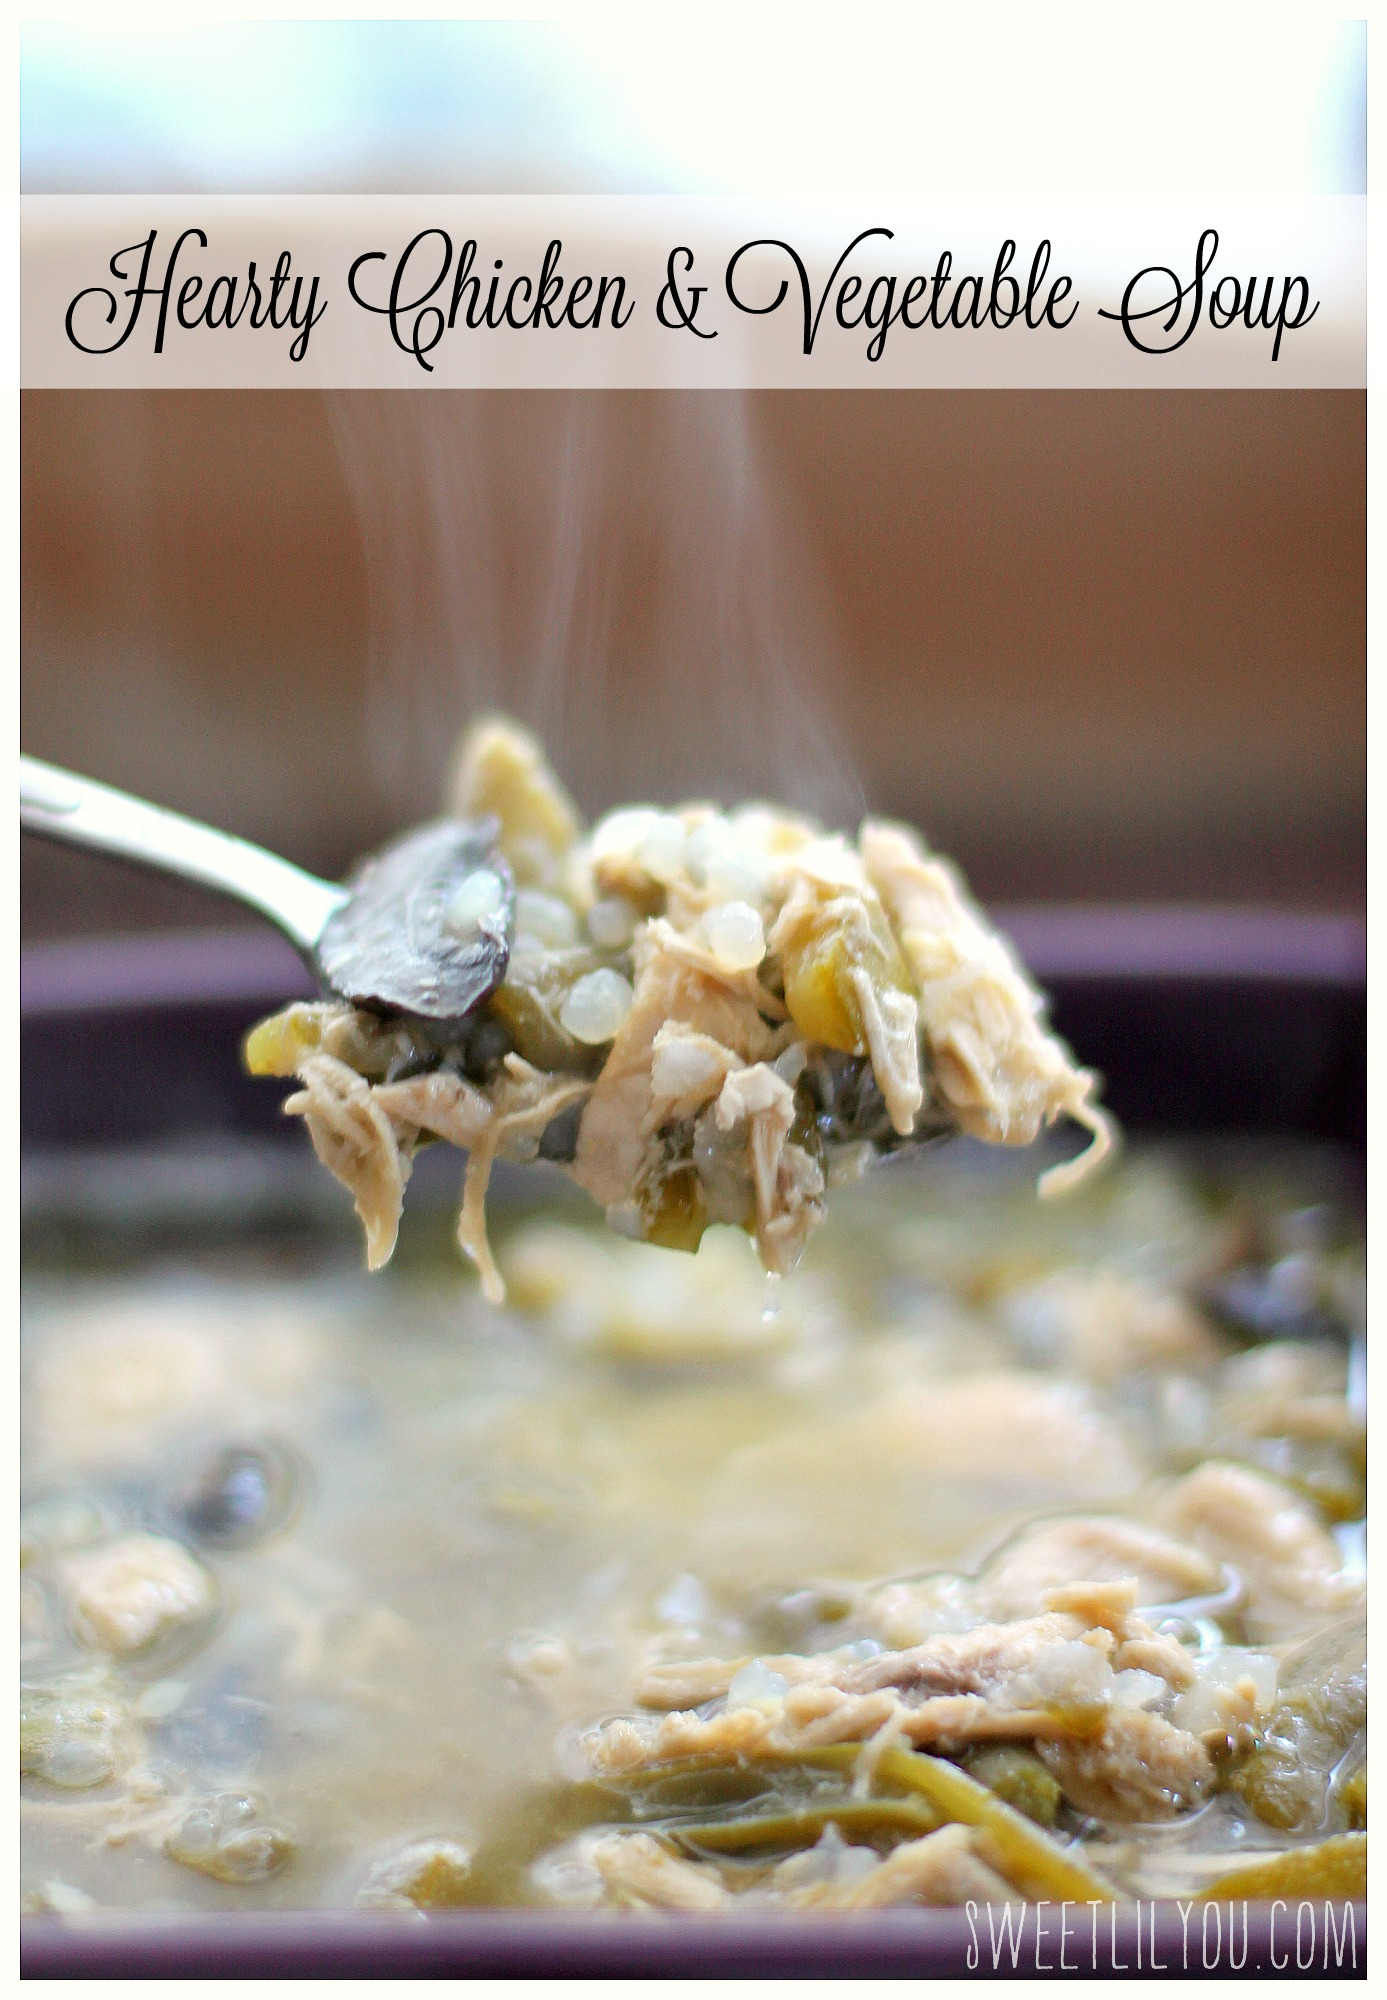 Hearty Chicken & Vegetable Soup - #CreativeHop #Recipe - sweet lil you